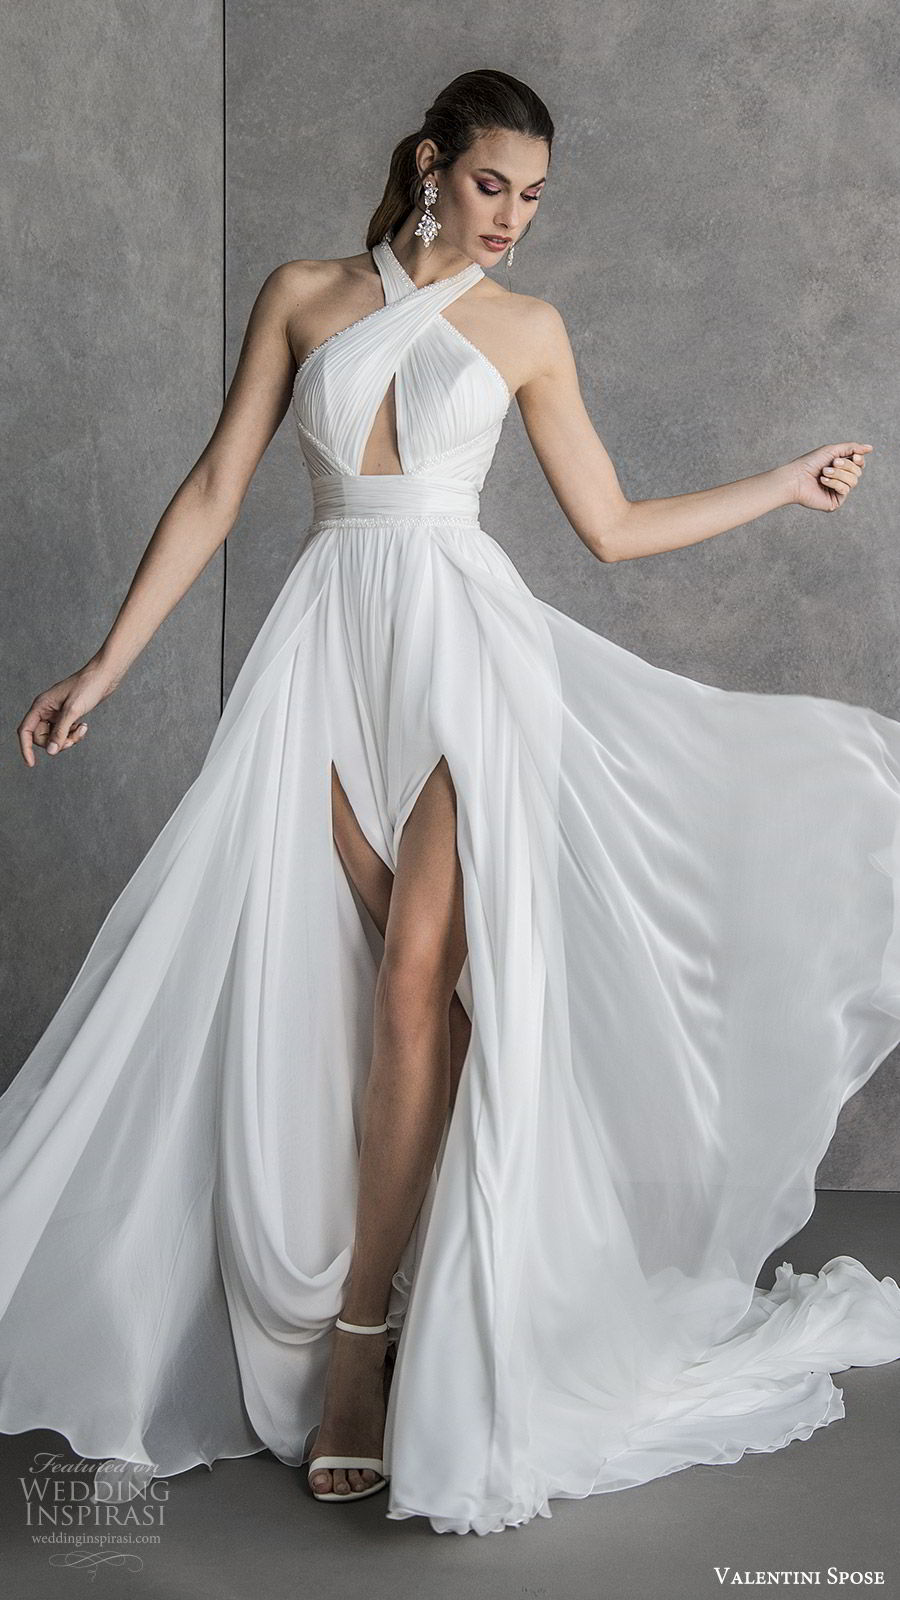 valentini spose spring 2020 bridal sleeveless halter neck cutout ruched bodice double slit skirt soft a line wedding dress (19) mv